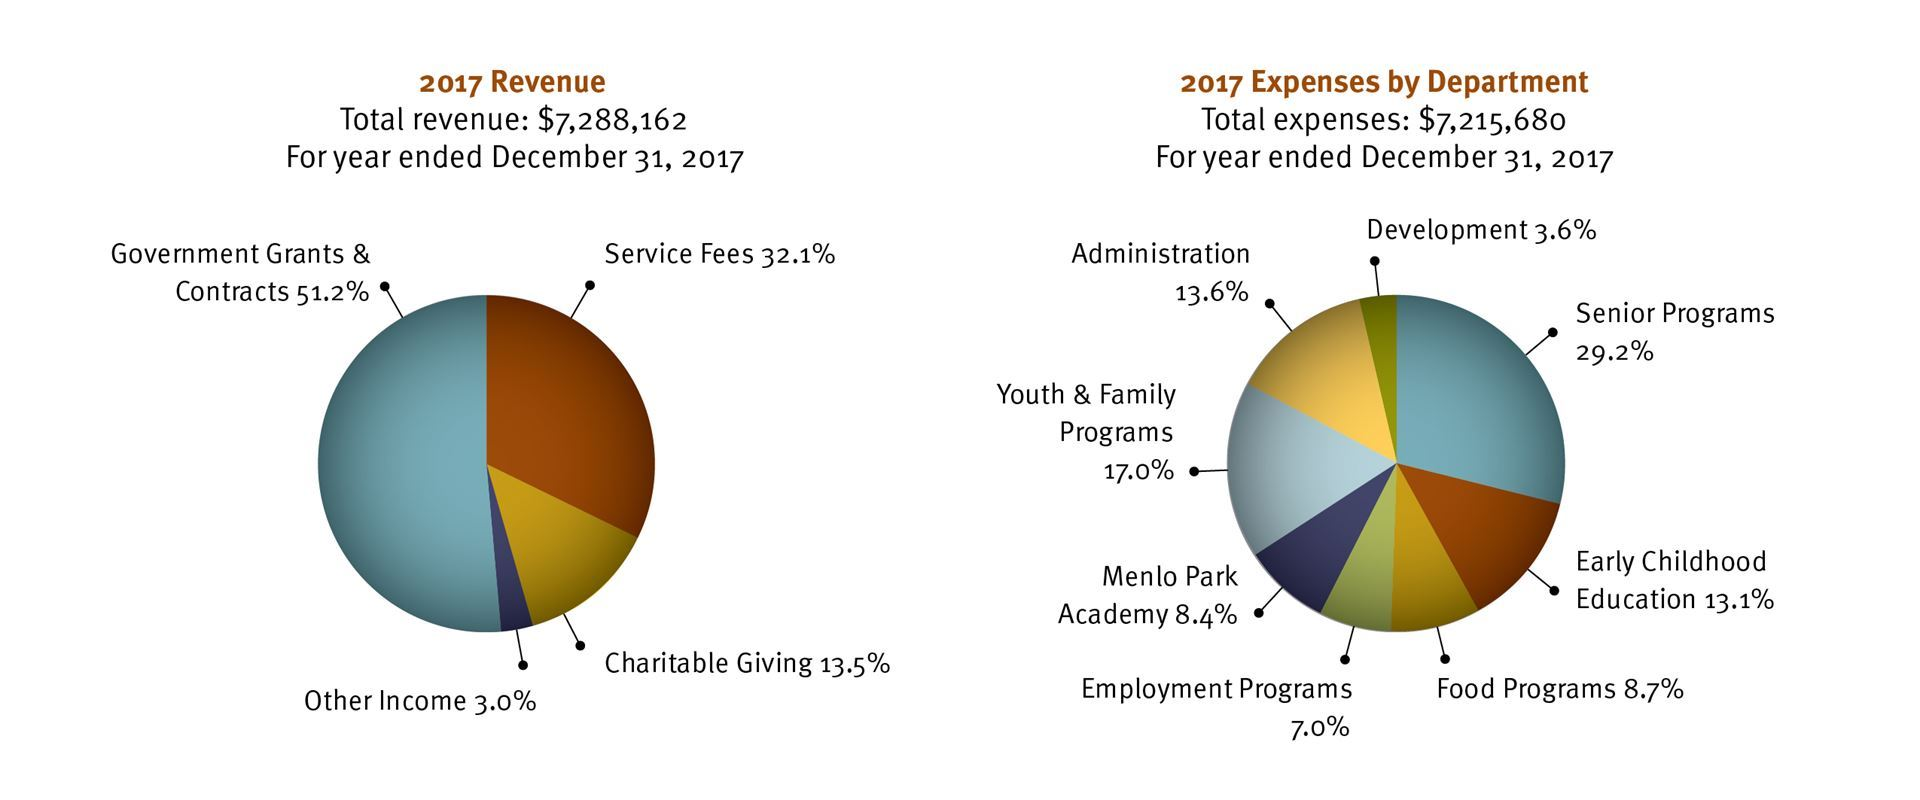 Two pie charts showing 2017 revenue and expenses.  Total revenue is $7,288,162. 51.2% is government grants and contracts, 32.1% is service fees, 13.5% is charitable giving, and  3% is other income. Total expenses are  $7,215,680. 29.2% is senior programs, 13.1% is early childhood education, 8.7% is food programs, 7% is employment programs, 8.4% is Menlo Park Academy, 17% is youth and family programs, 13.6% is administration, and 3.6% is development.